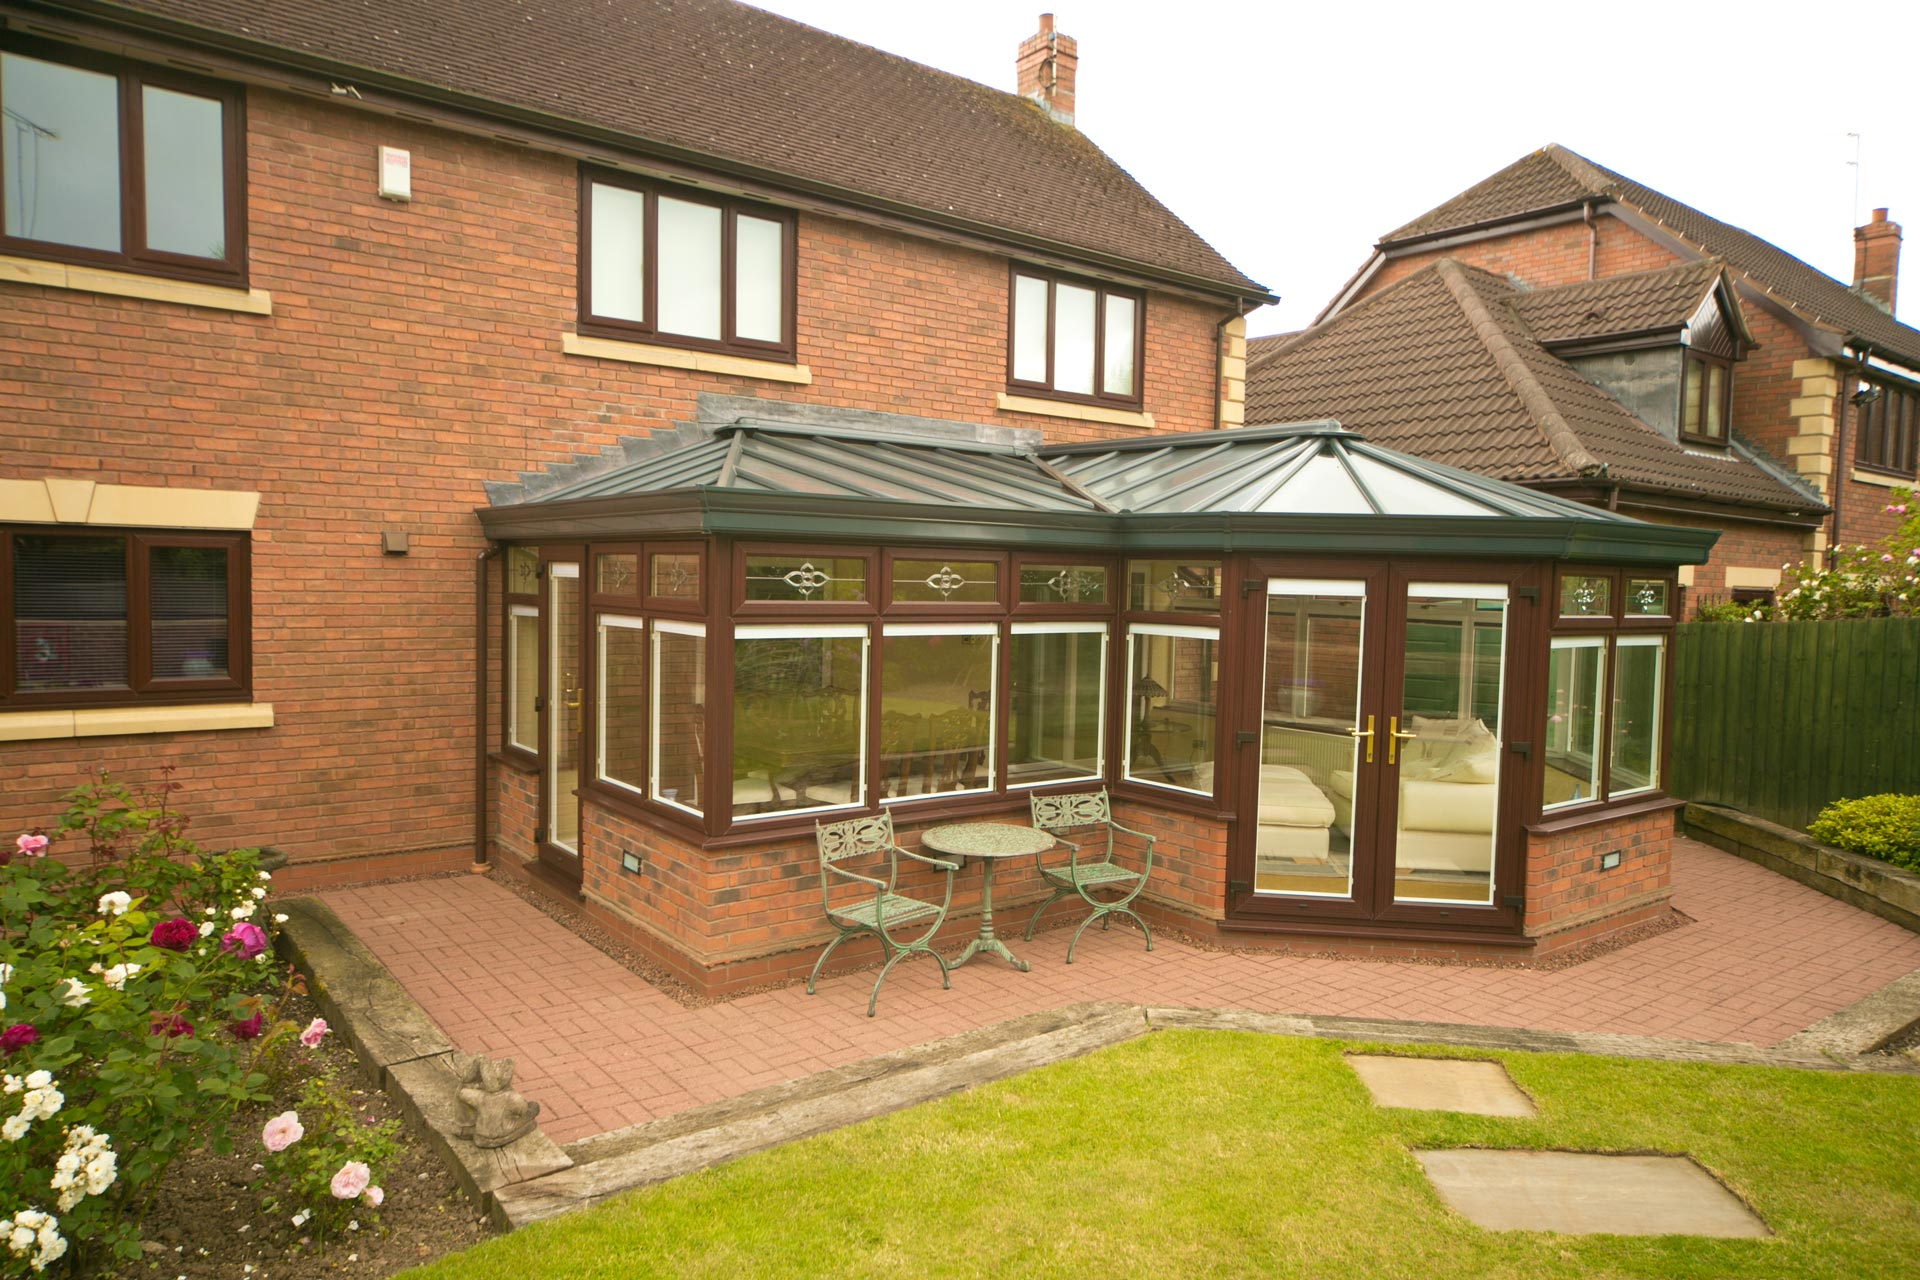 P shaped conservatory style